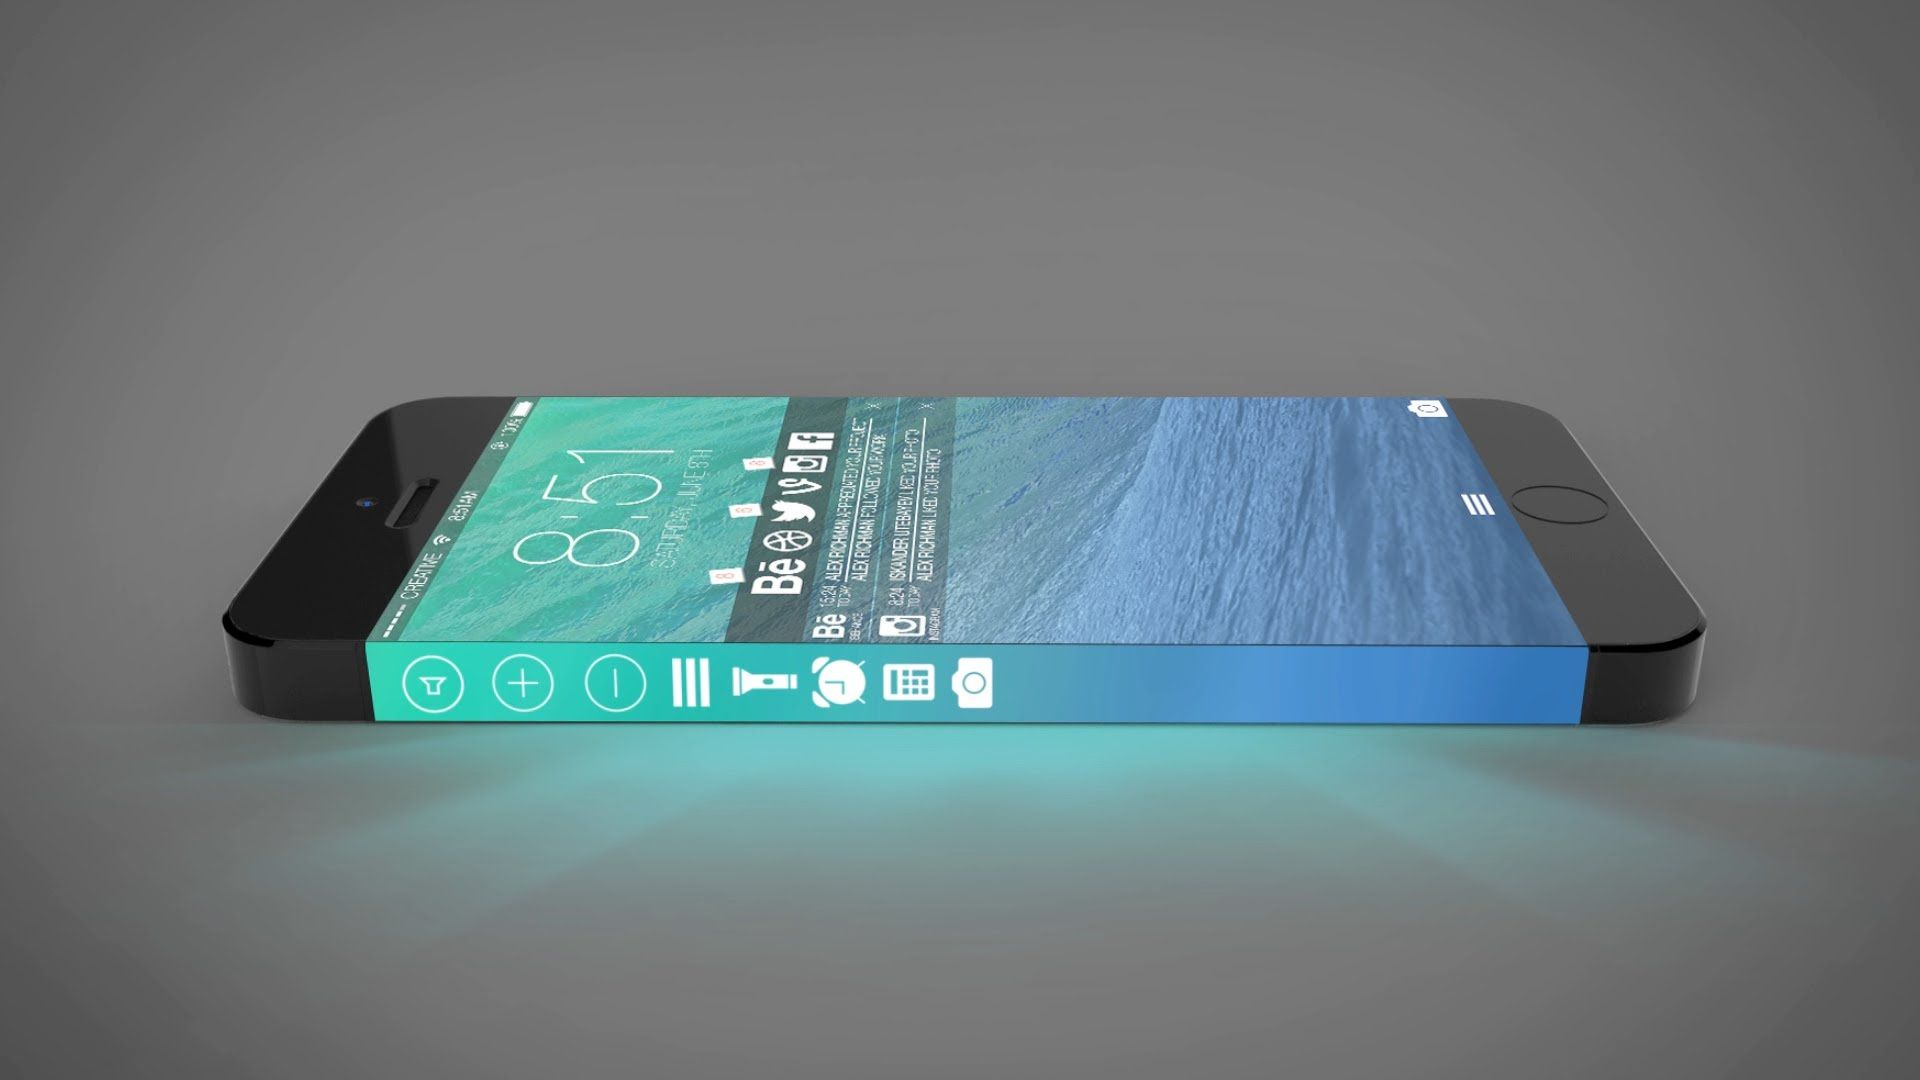 10 Fascinating Revelations from the Latest iPhone 6S Leak